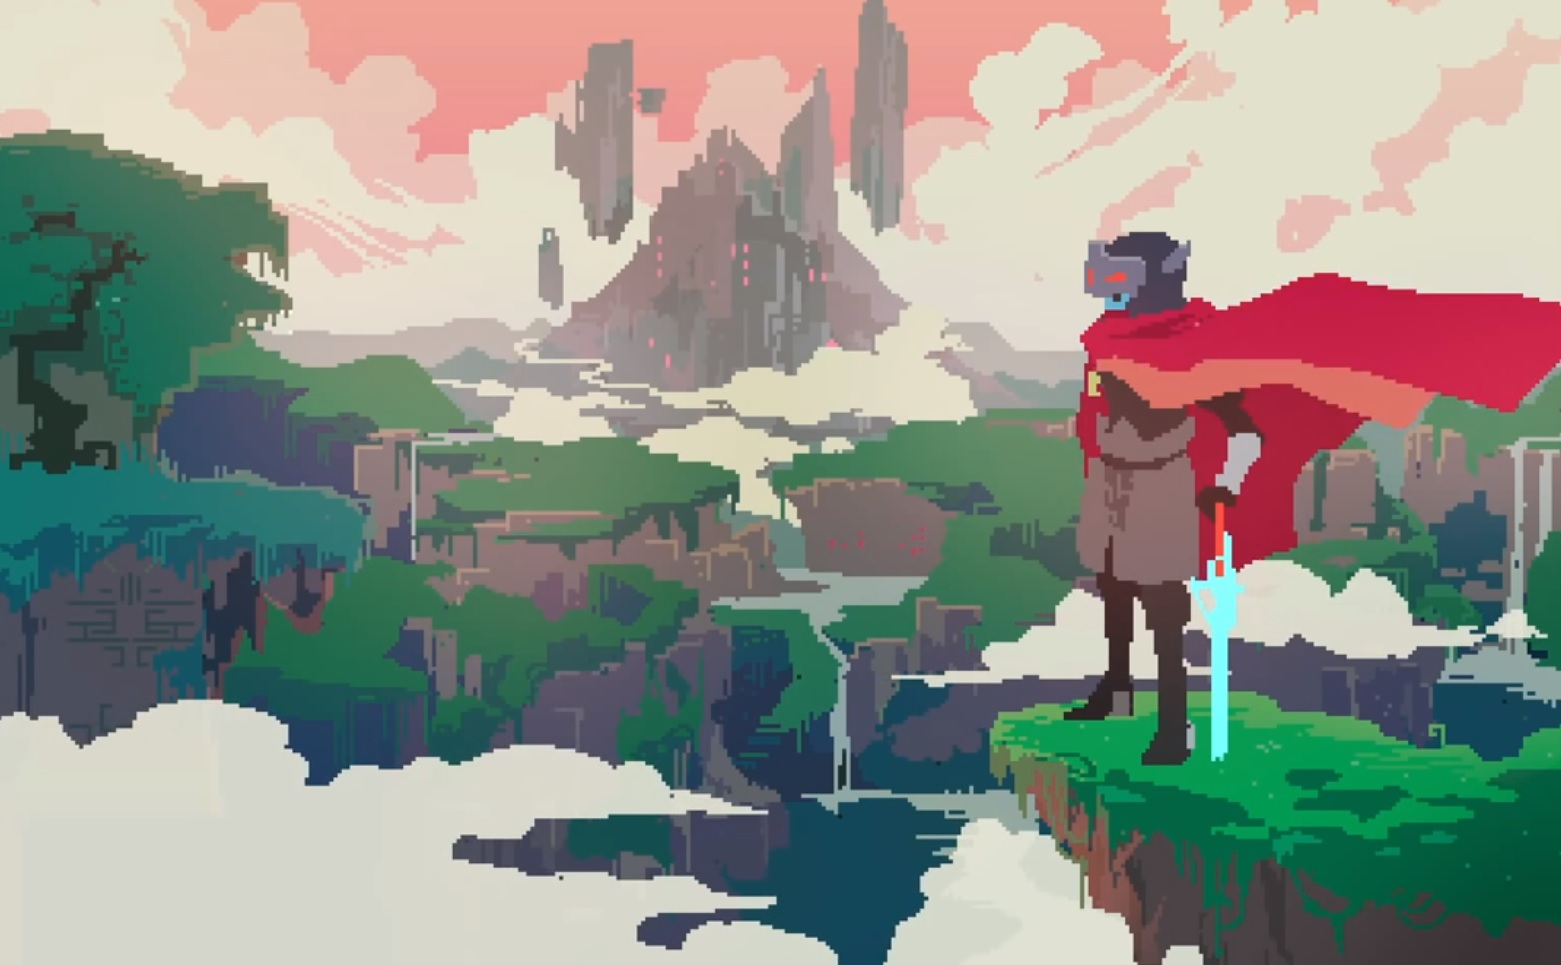 Preview Hyper Light Drifter Hyper Light Drifter Artwork 332538